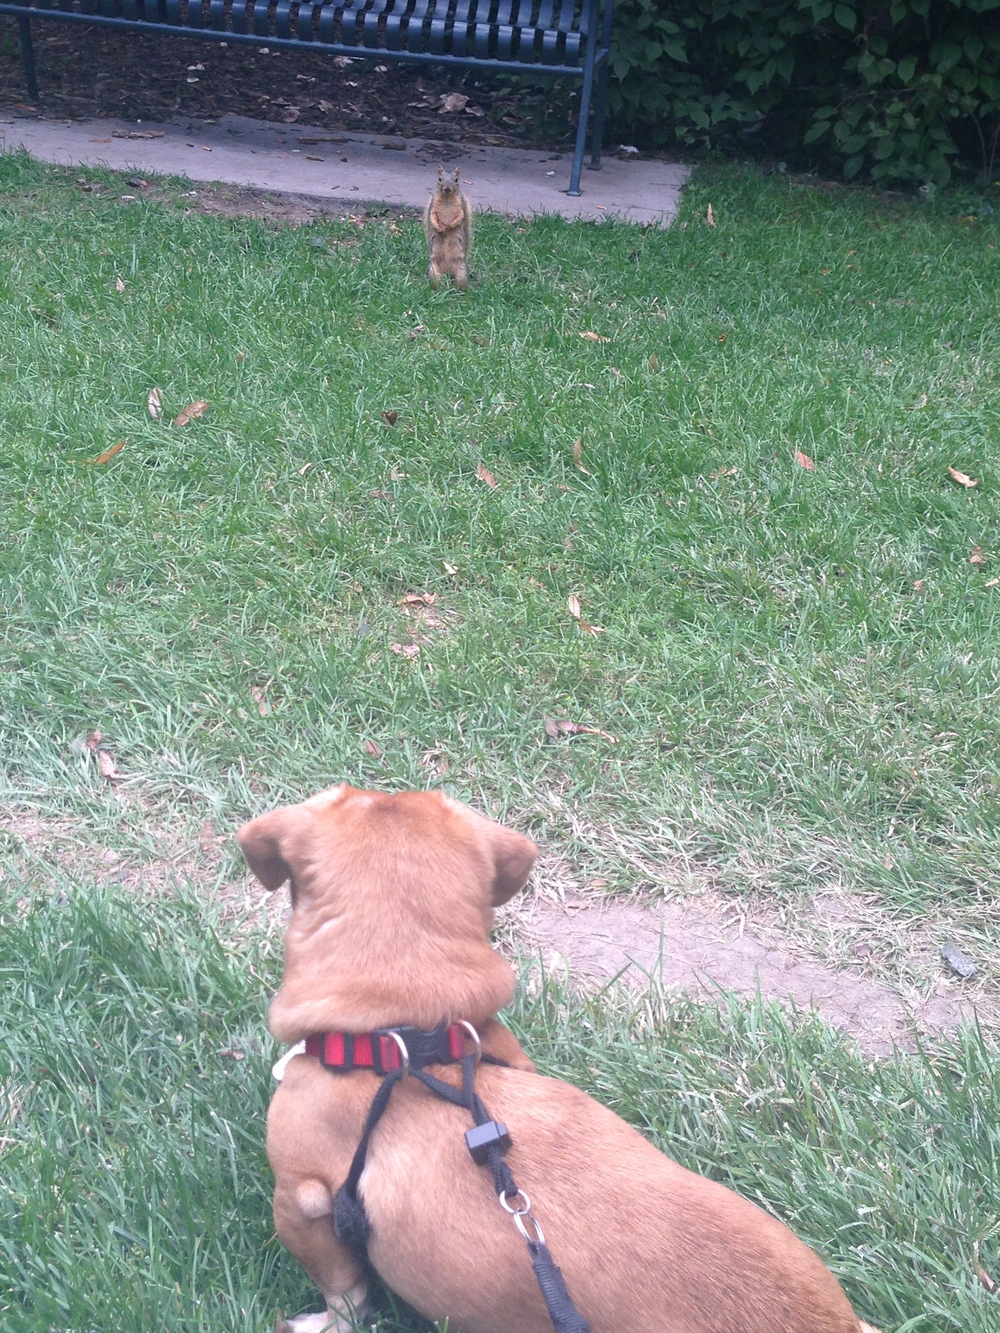 Squirrel standoff... Maynard, as always, remained King of the Hood.